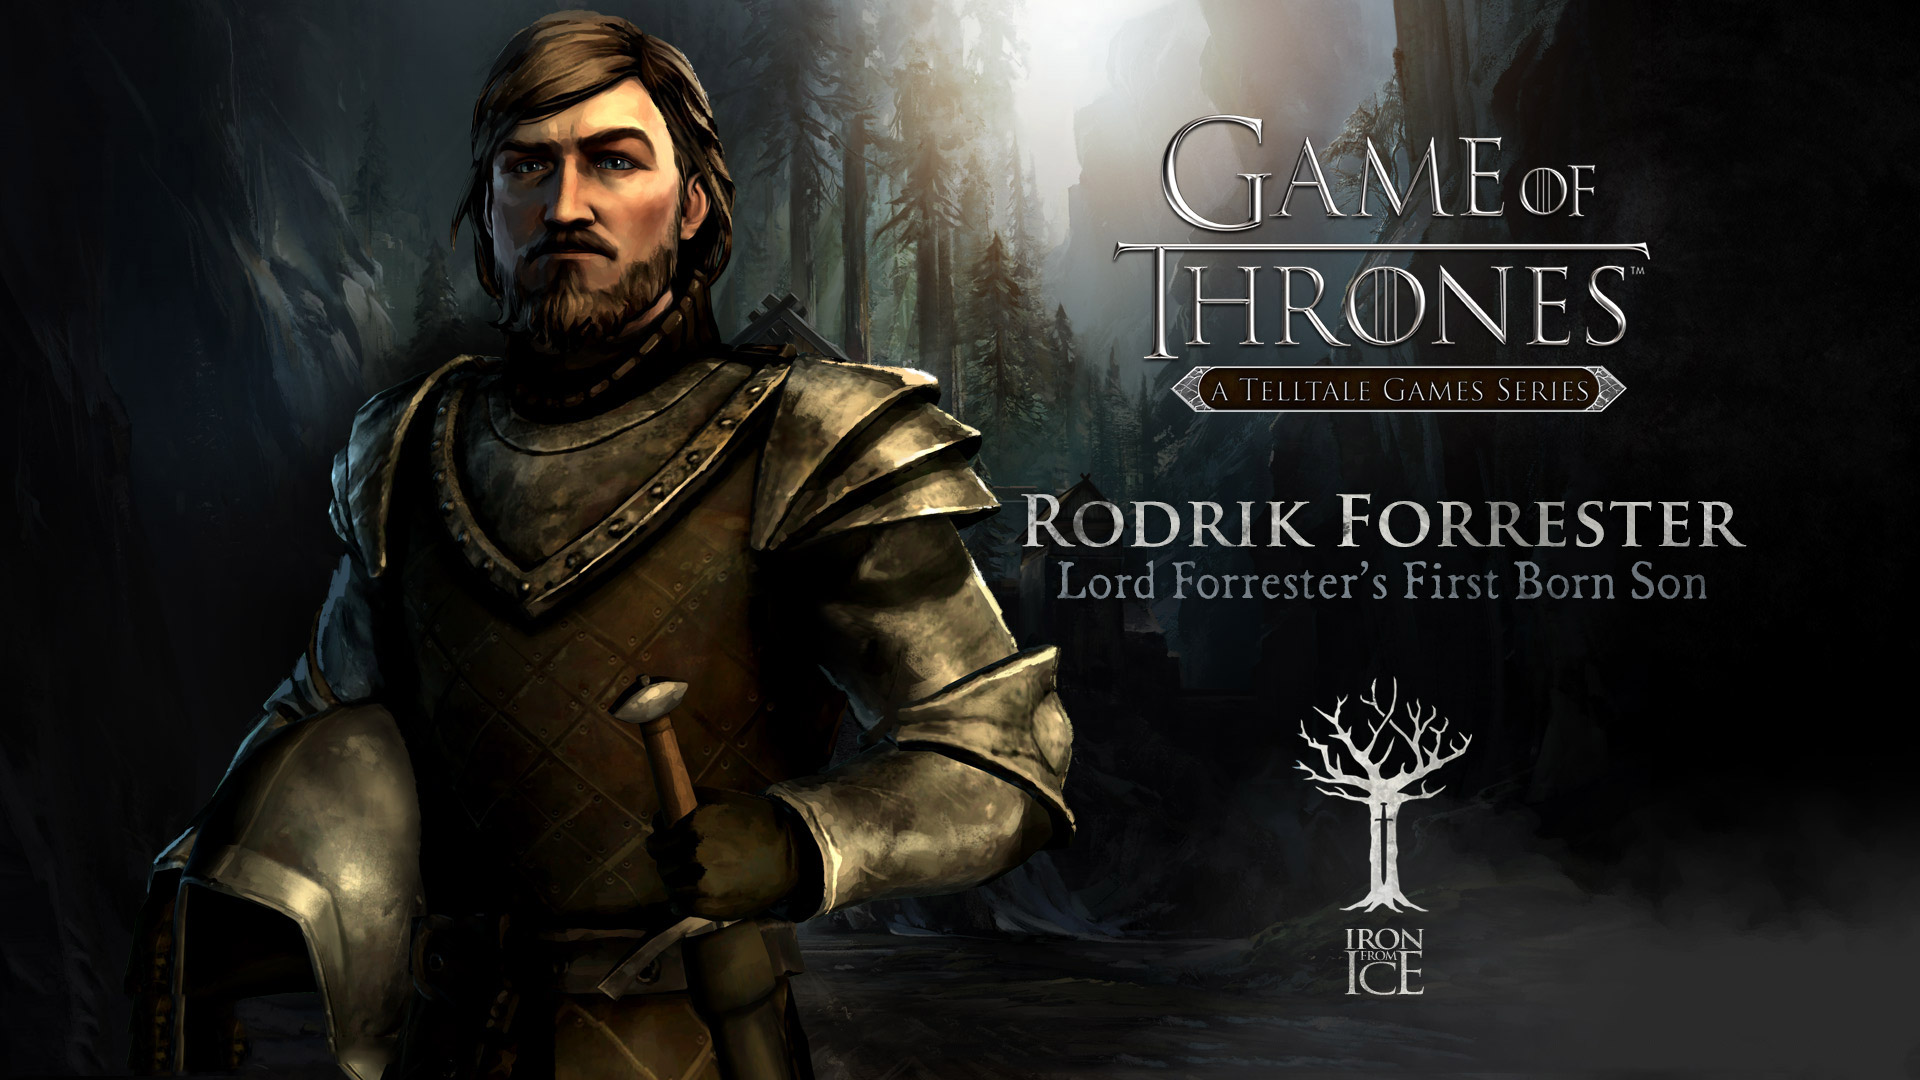 Free Game of Thrones Wallpaper in 1920x1080